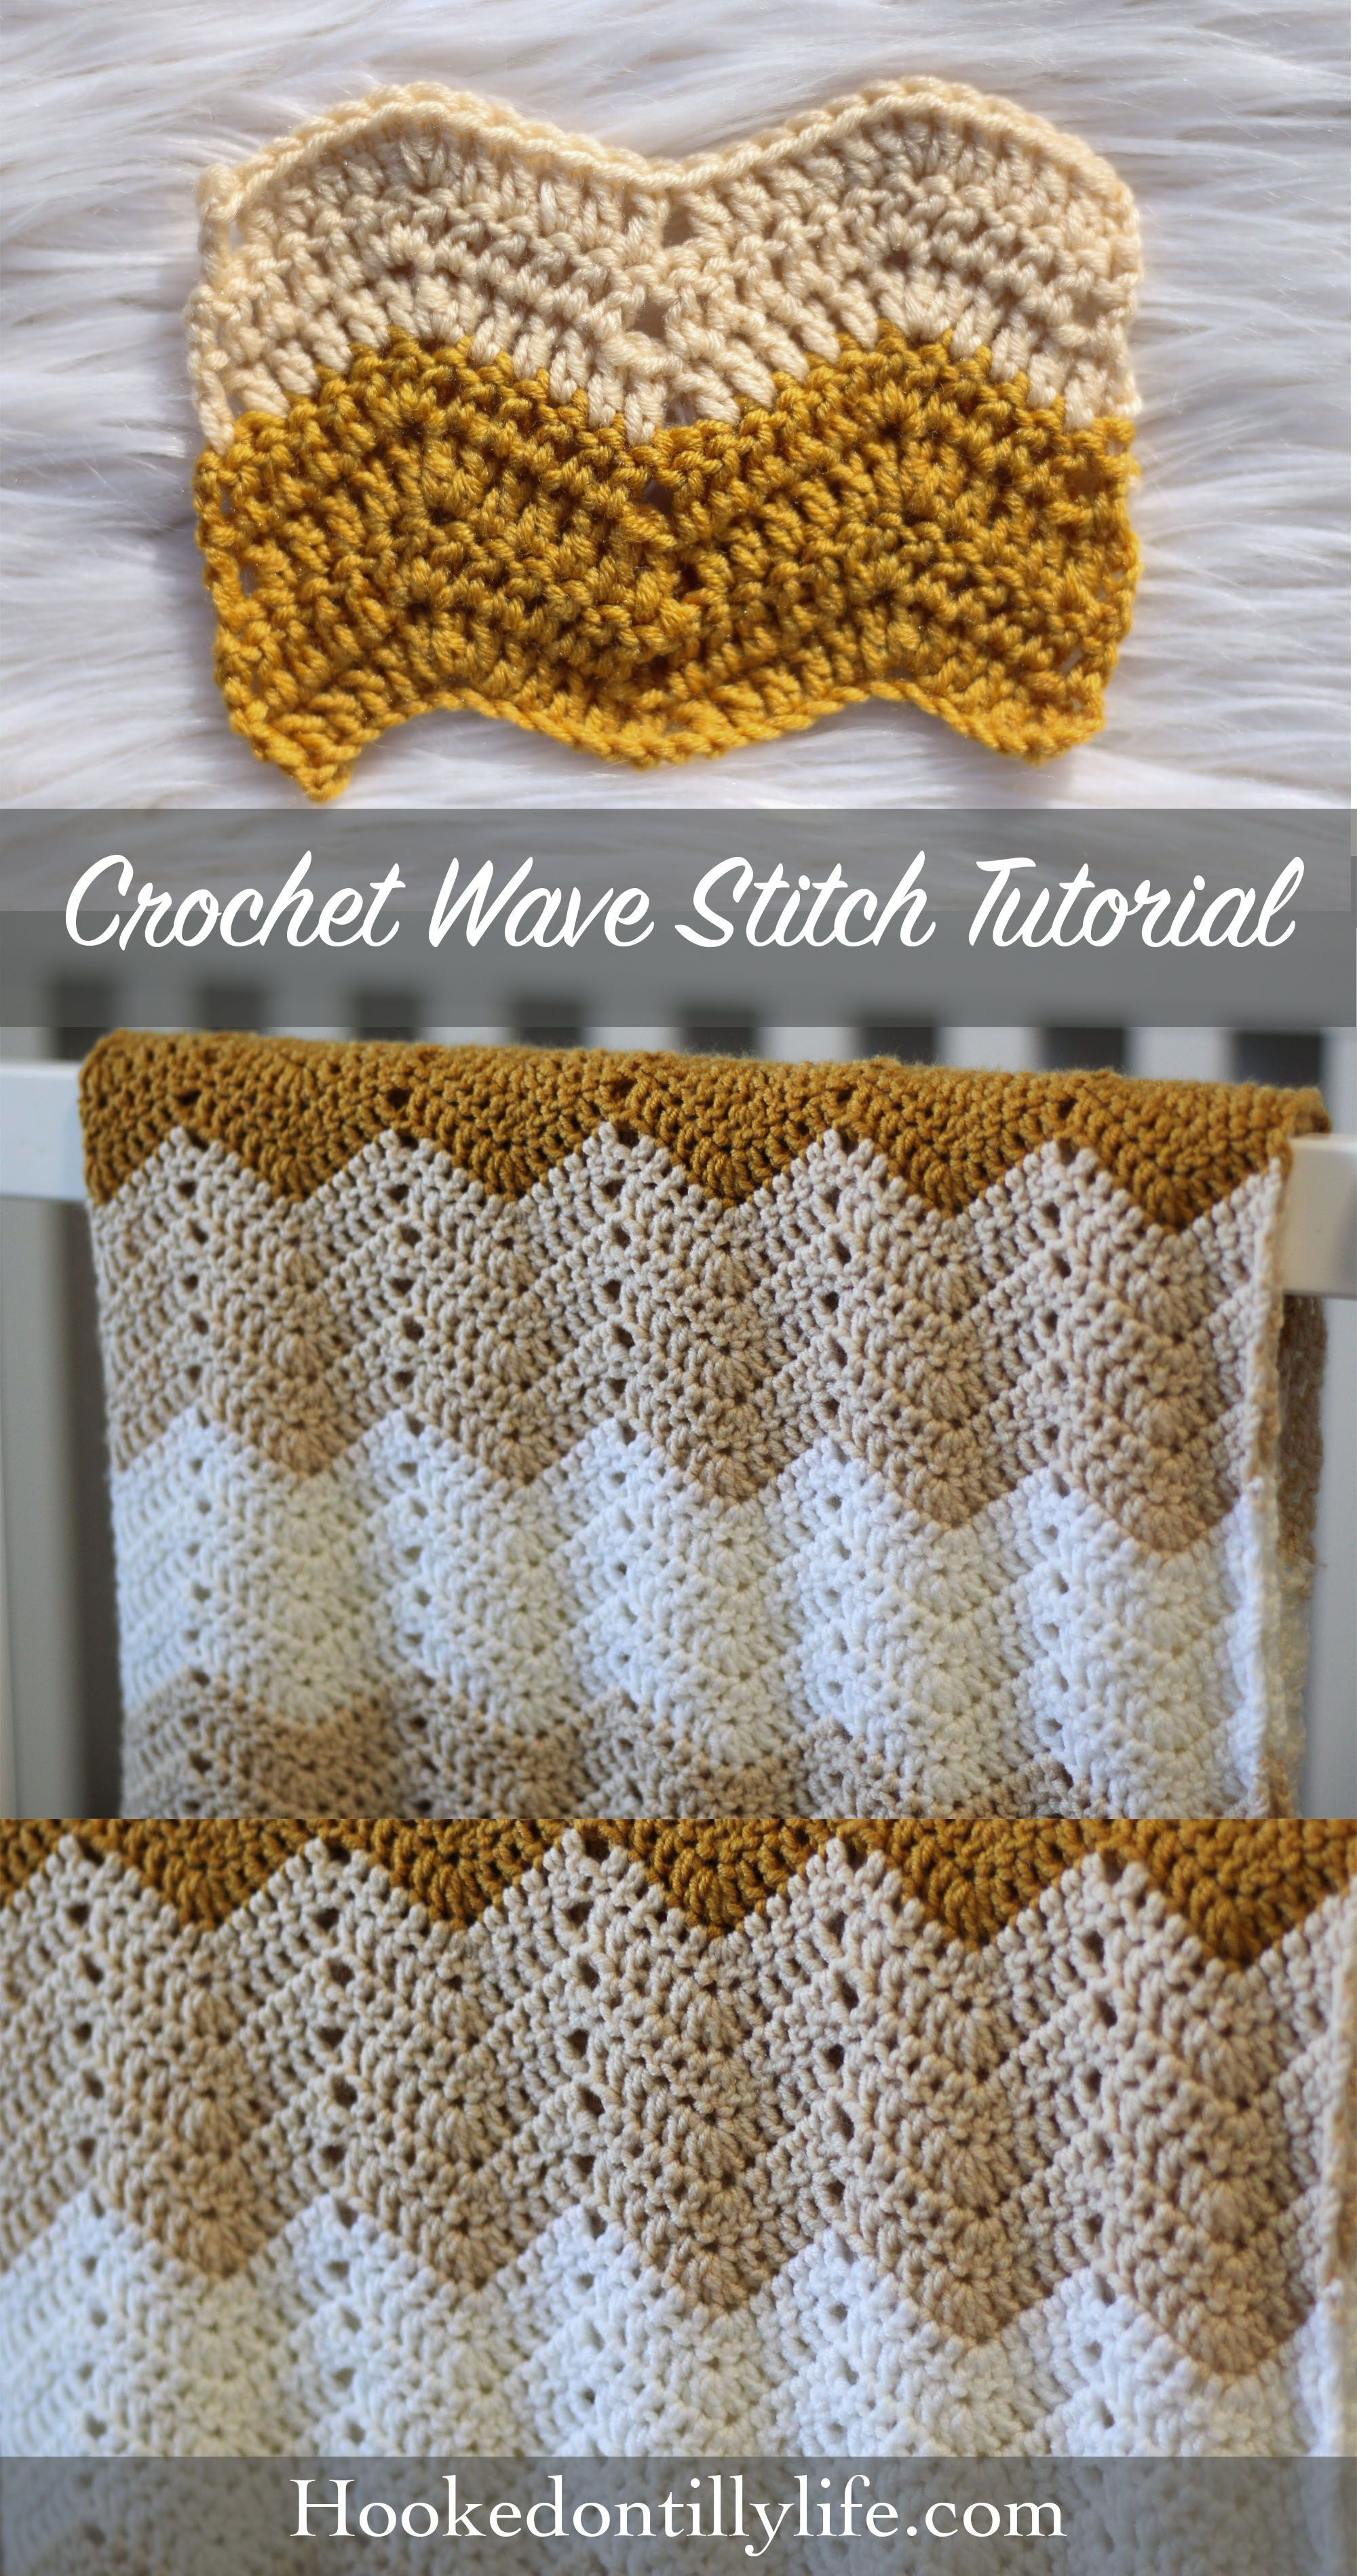 Wave Stitch Tutorial - Crochet Stitch #crochettutorial